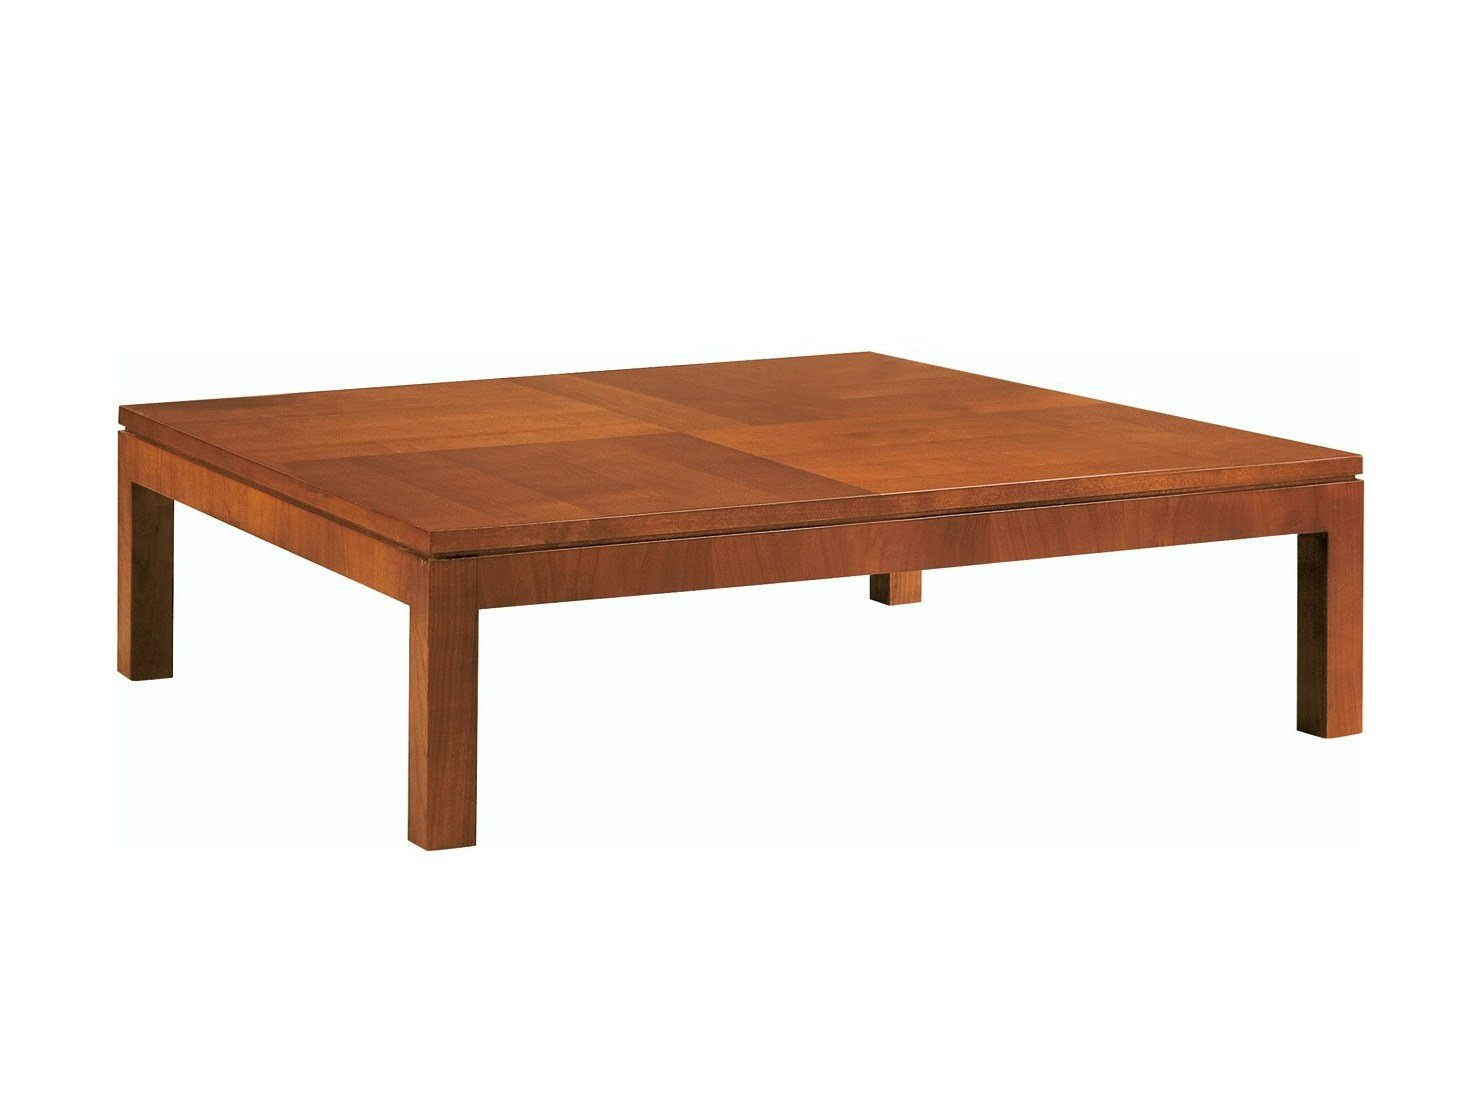 Cherry wood coffee table bob by morelato design centro ricerche maam Cherry wood coffee tables